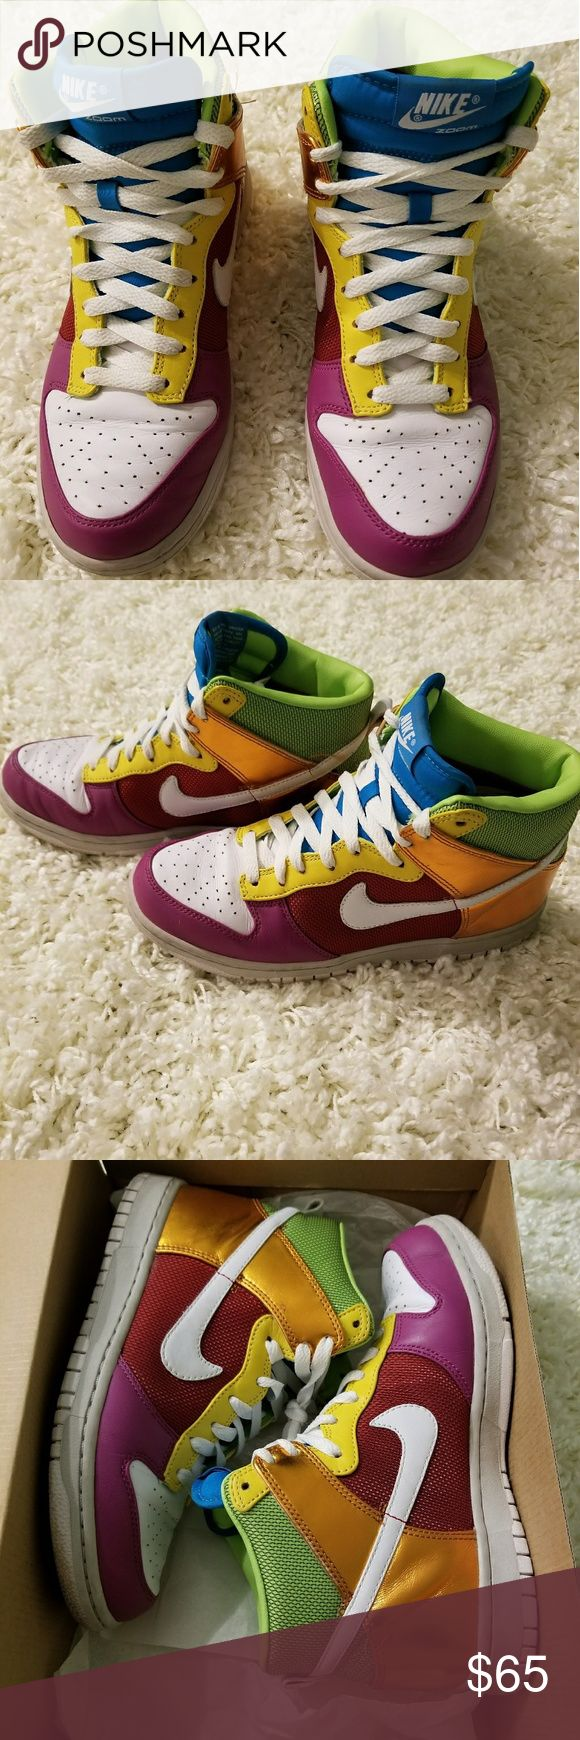 Women's Nike Dunk Hi Premium Multi color Nike dunks Nike Shoes Sneakers